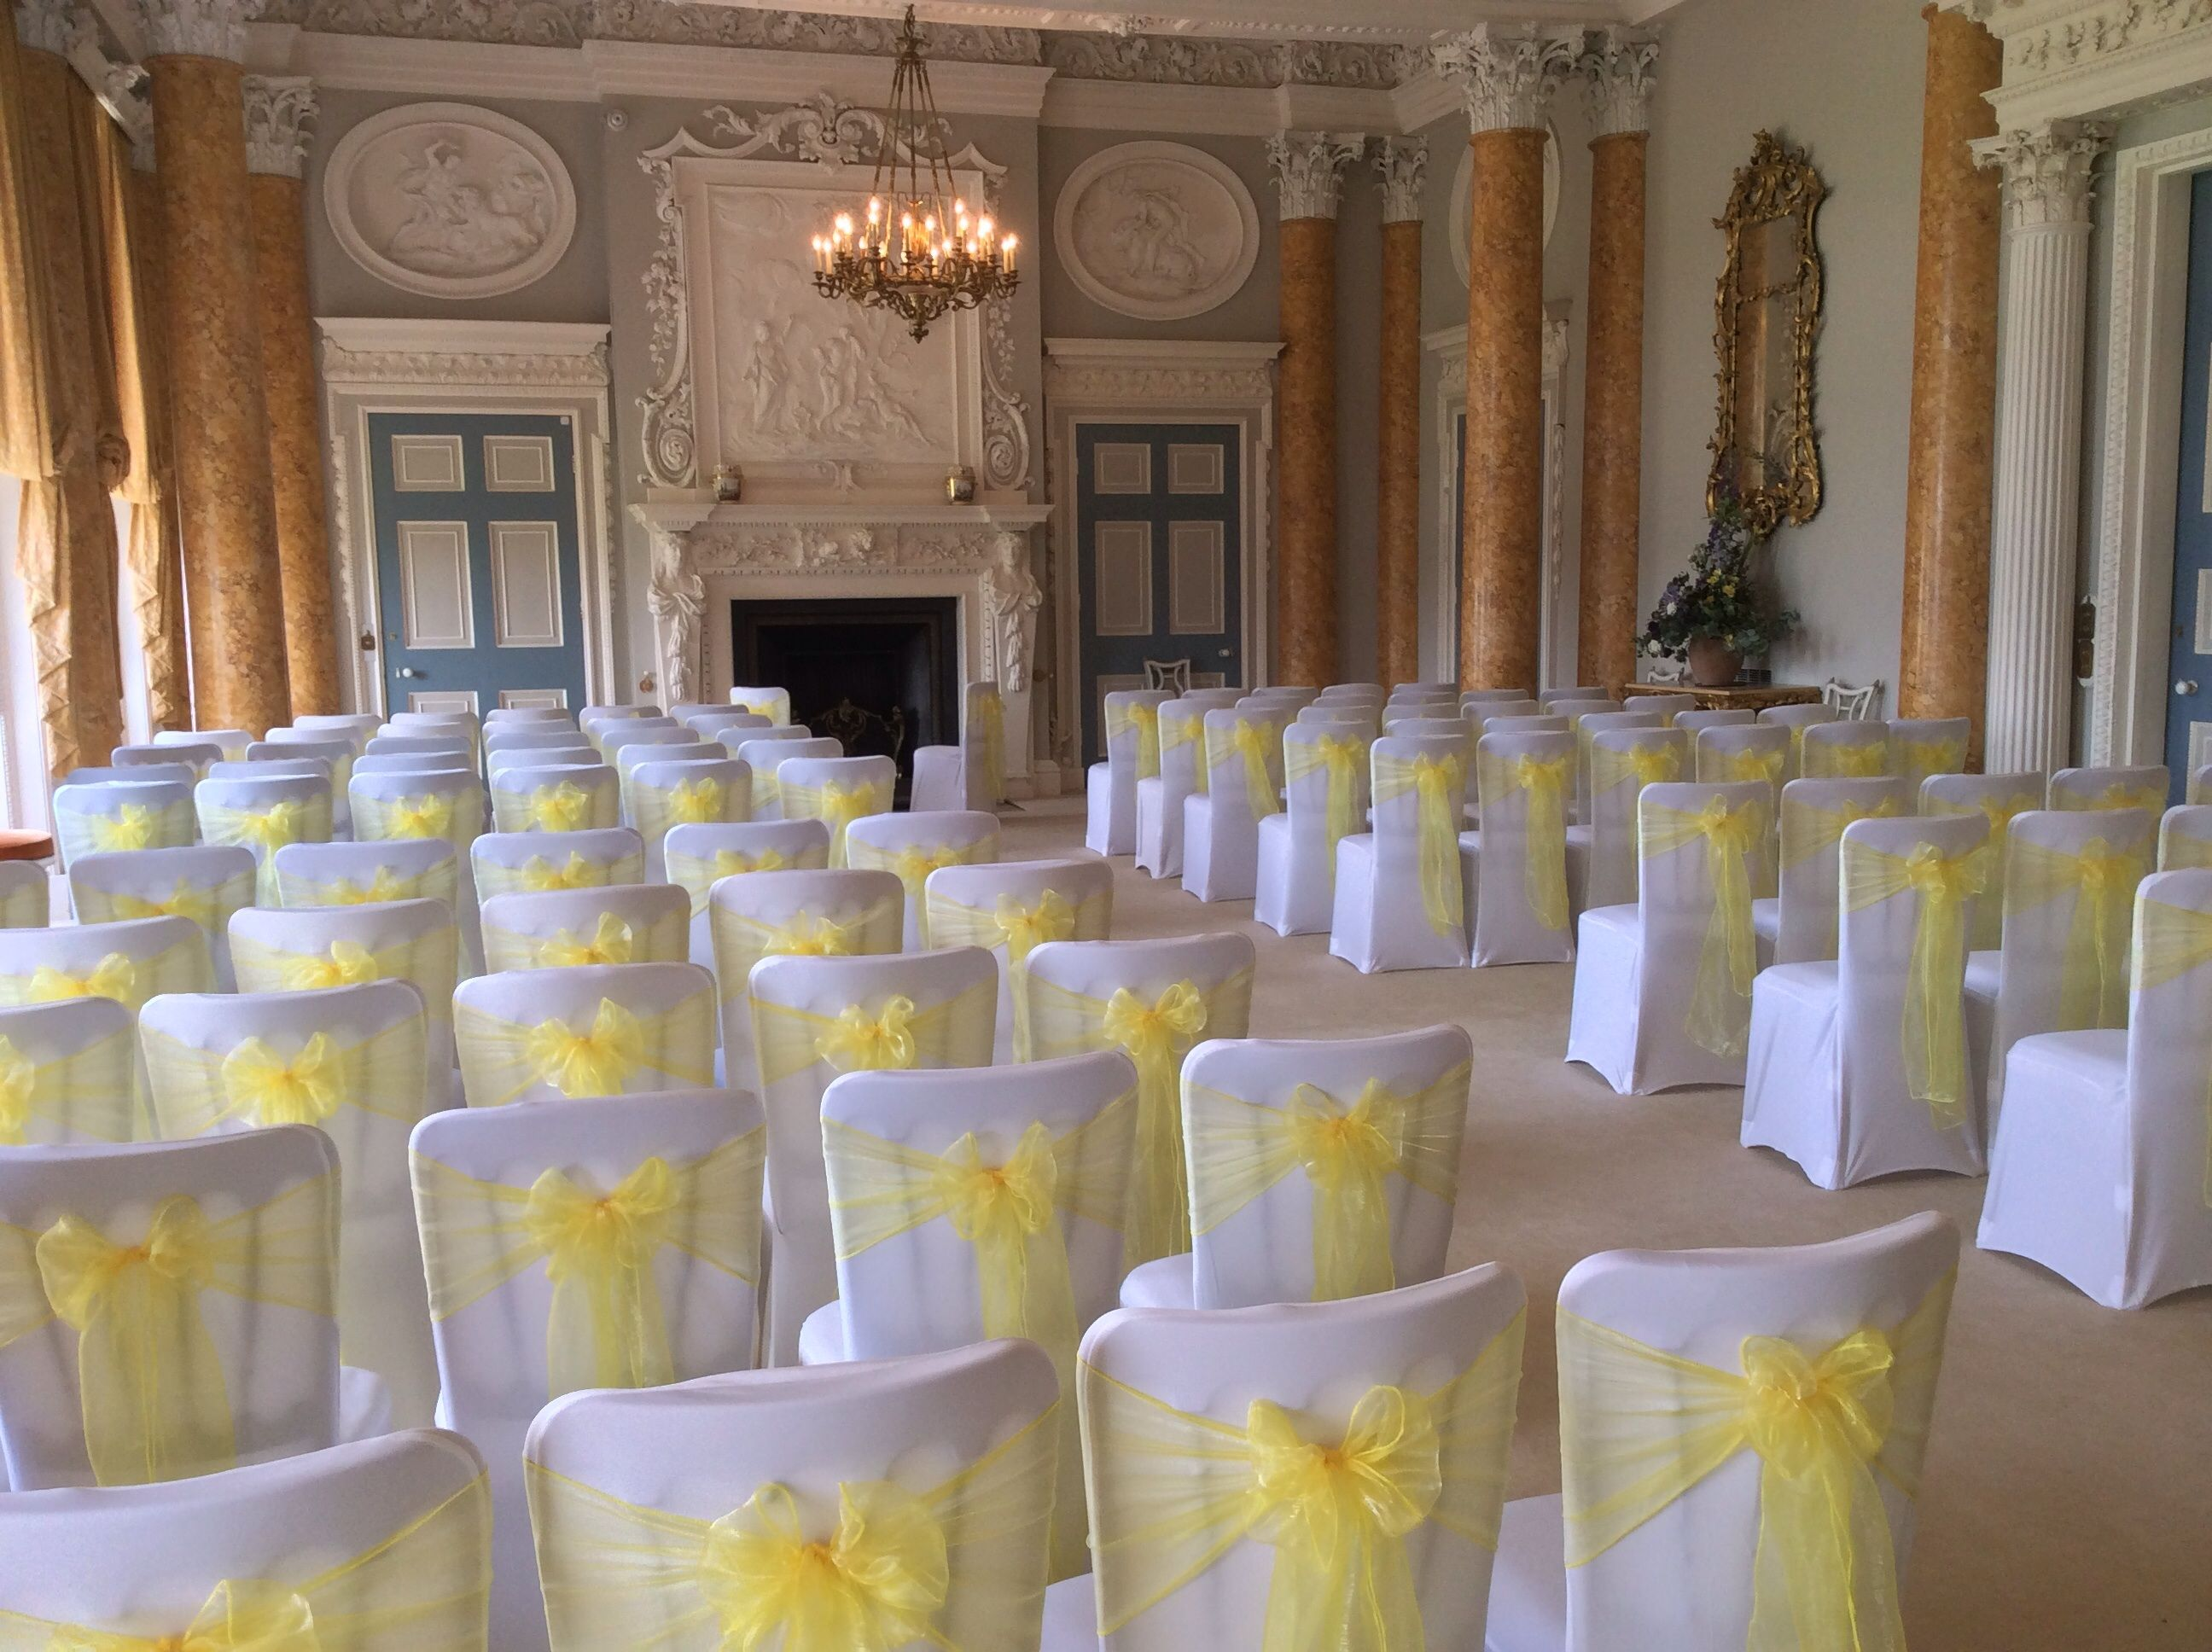 Wedding Chair Covers Burton On Trent Hanging Price We Styled Lemon Organza Sashes At Stoneleigh Abbey For A Spring